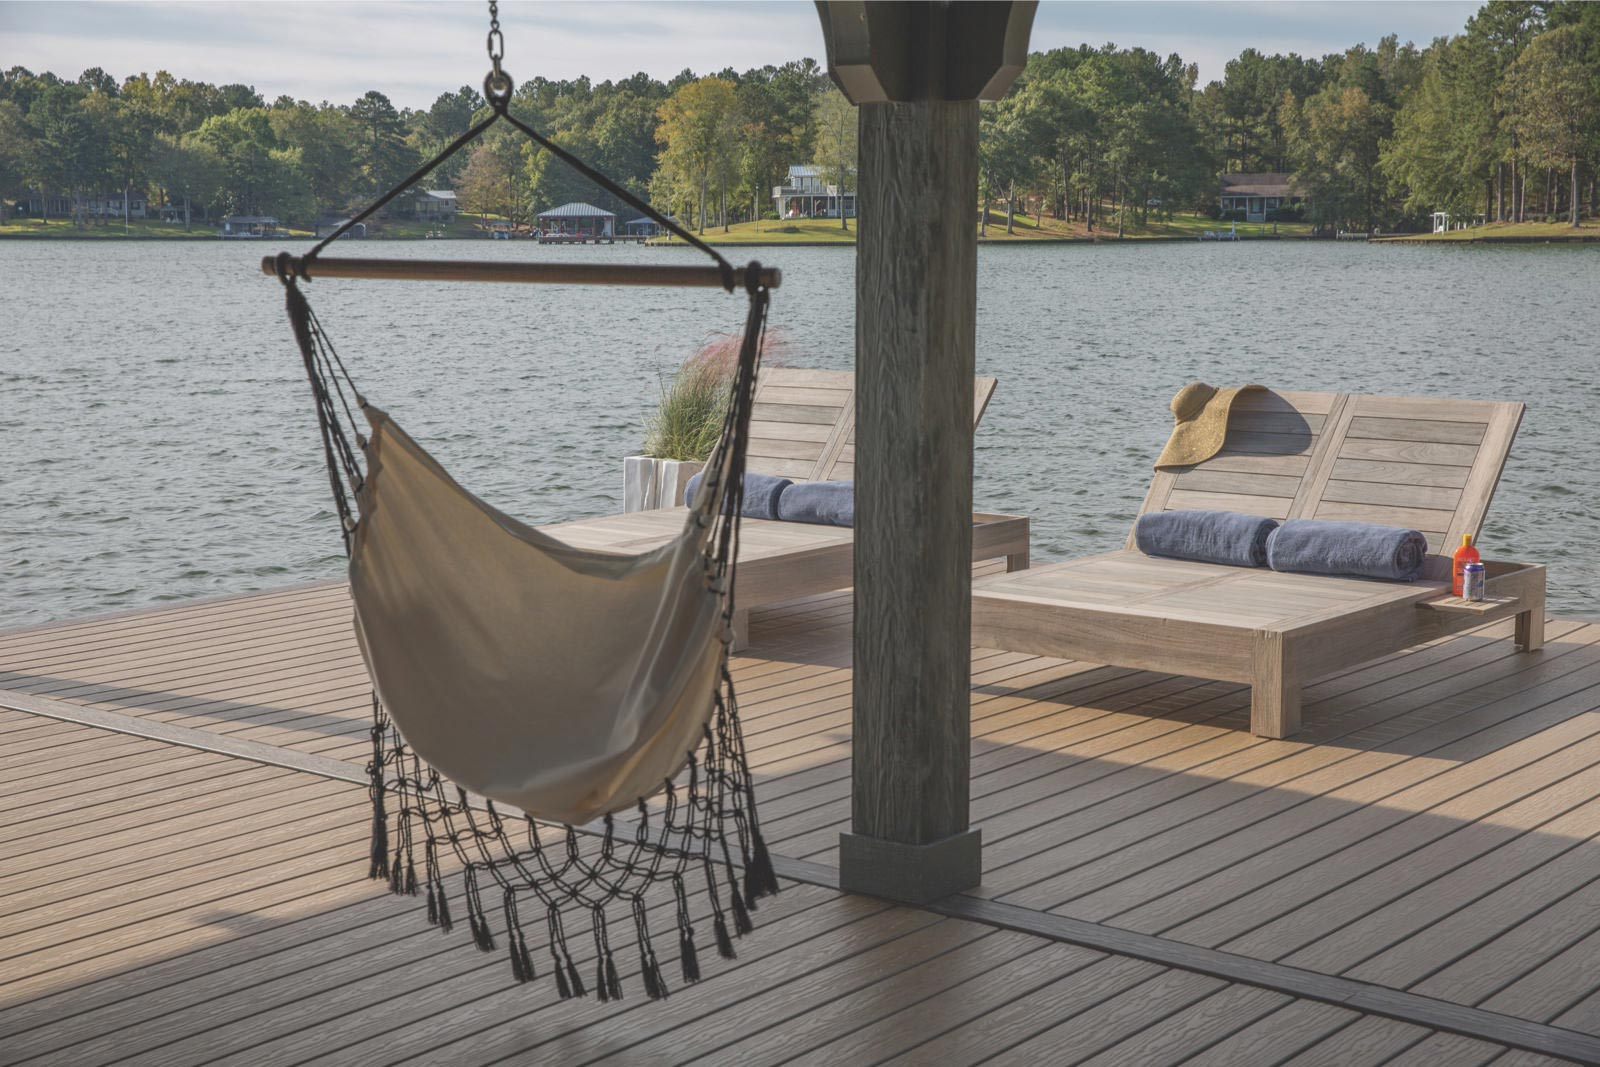 Dock with hammock and chairs